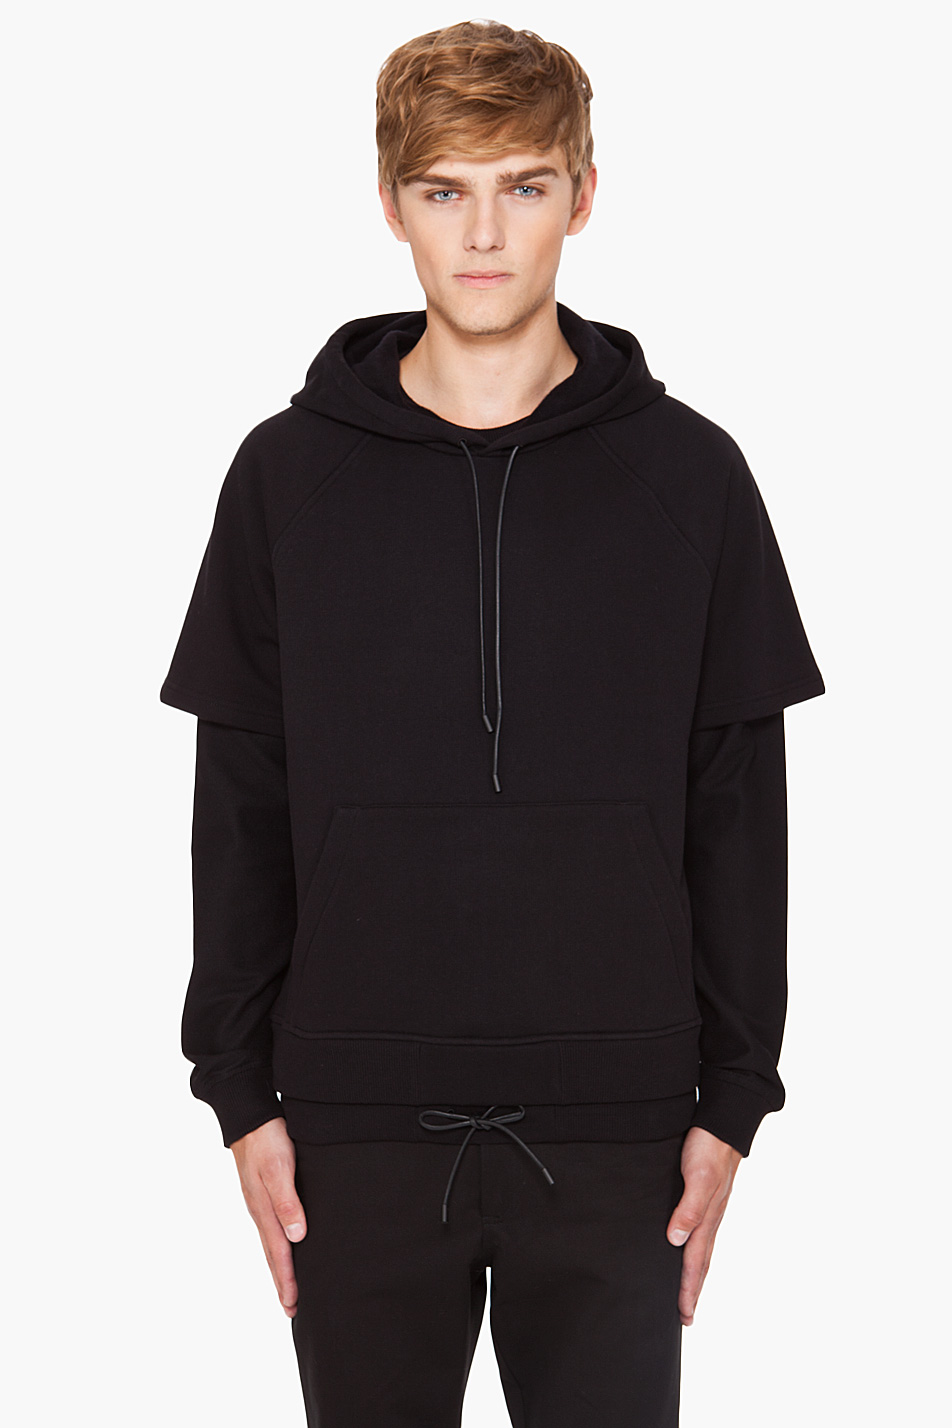 excellent double hoodie outfit black